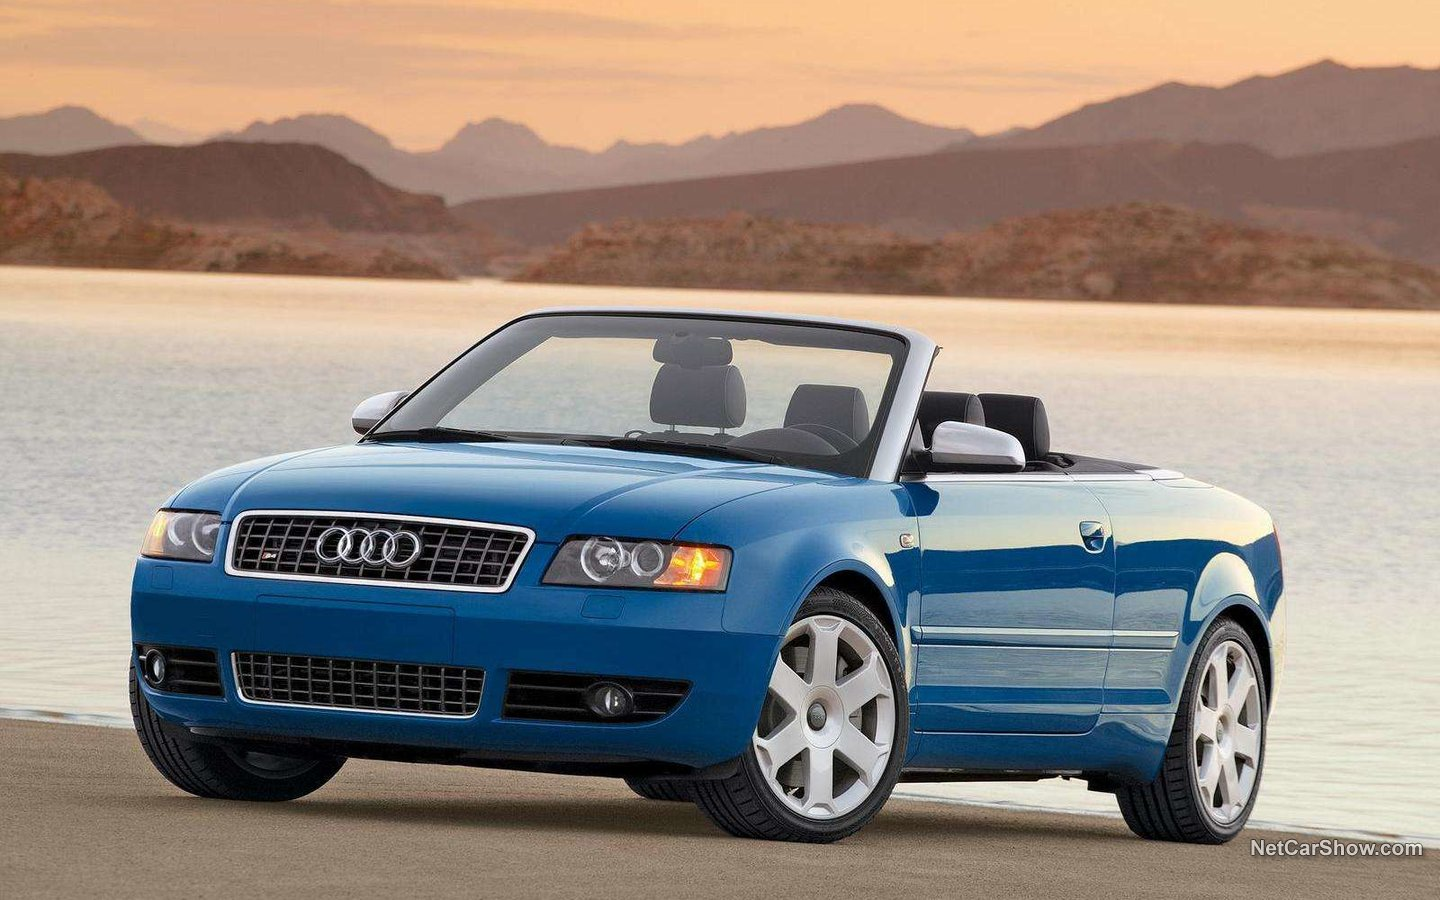 Audi A4 S4 Cabriolet 2005 bf0b9413